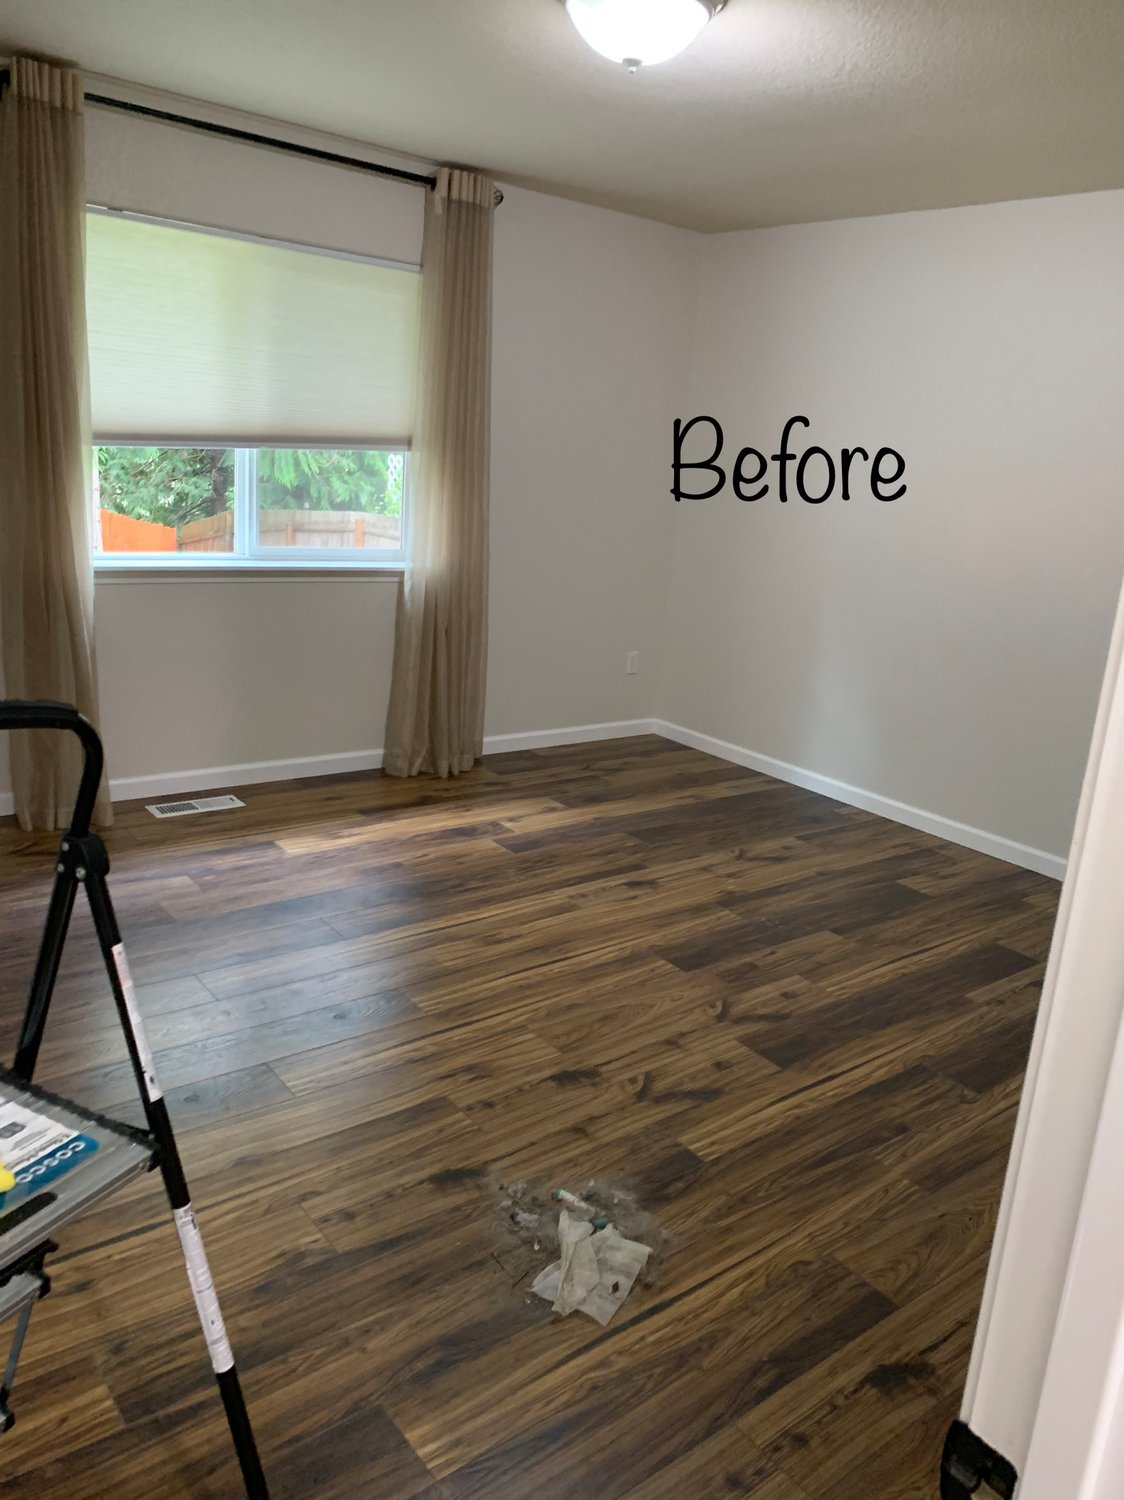 BEFORE: A bedroom with no furniture.